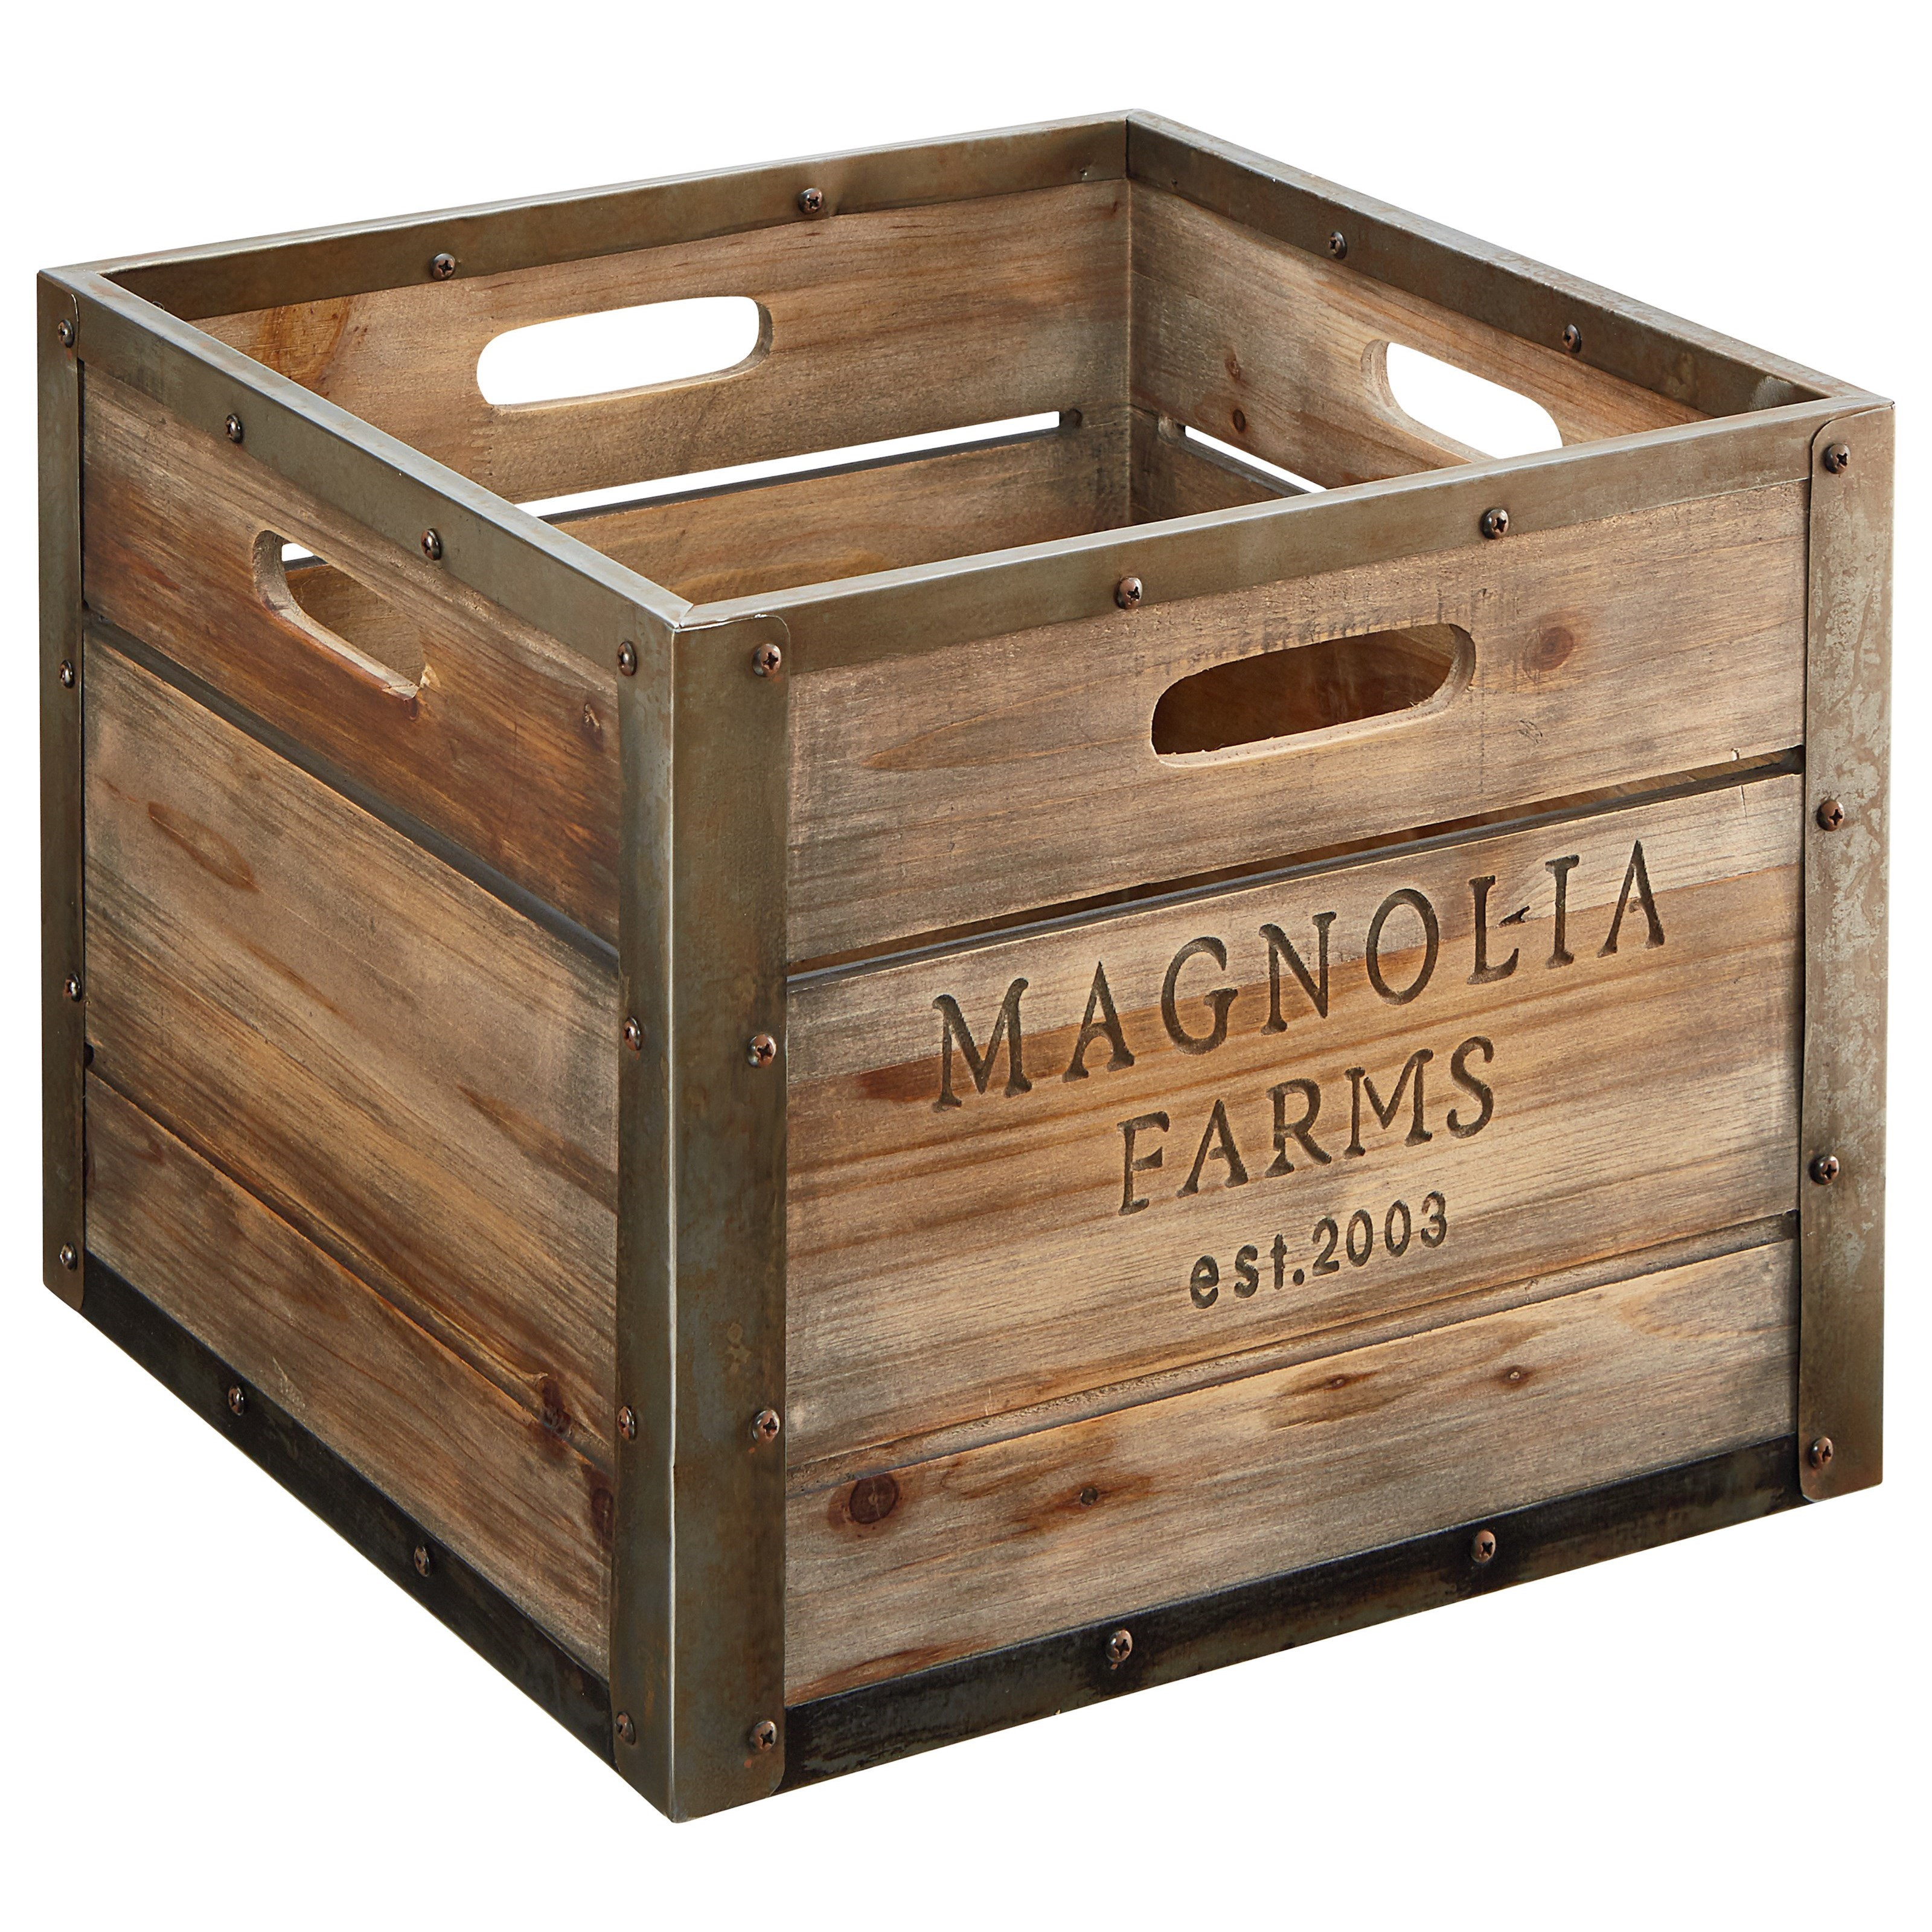 Magnolia Home by Joanna Gaines Accessories Magnolia Farms Produce Crate - Item Number: 90900513